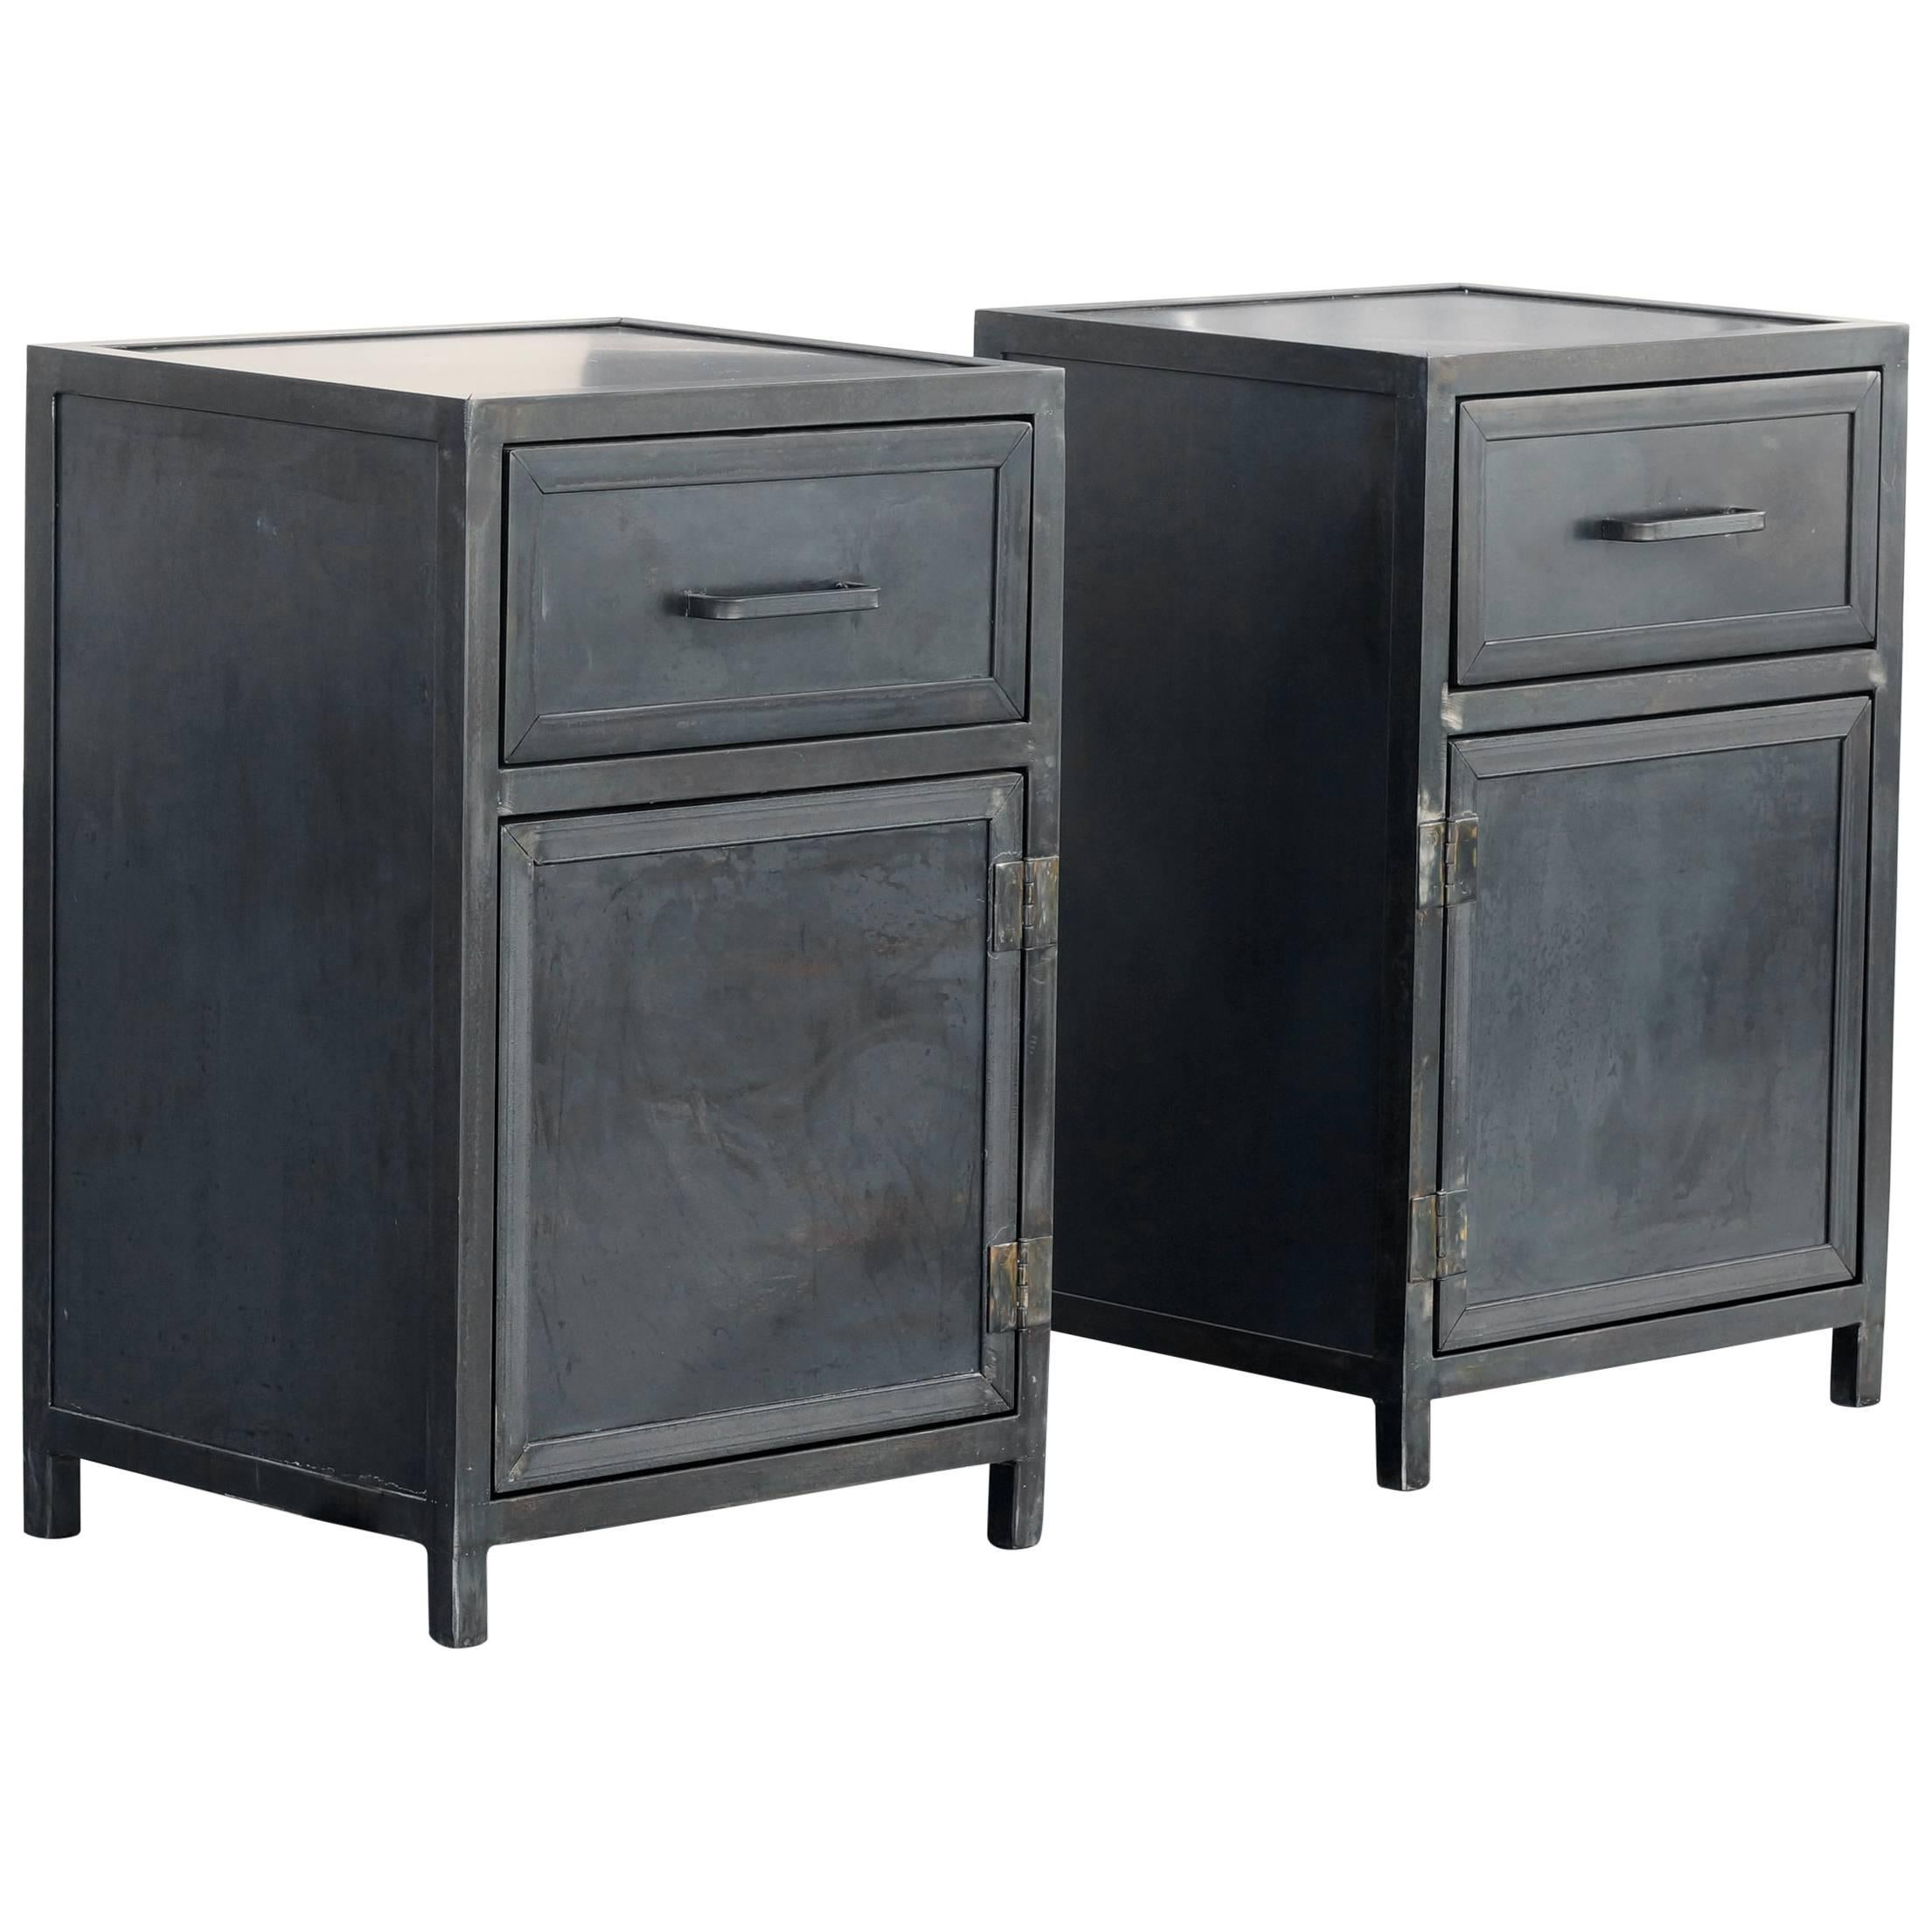 Charmant Steel Nightstand Cabinets By Rehab Vintage Interiors For Sale